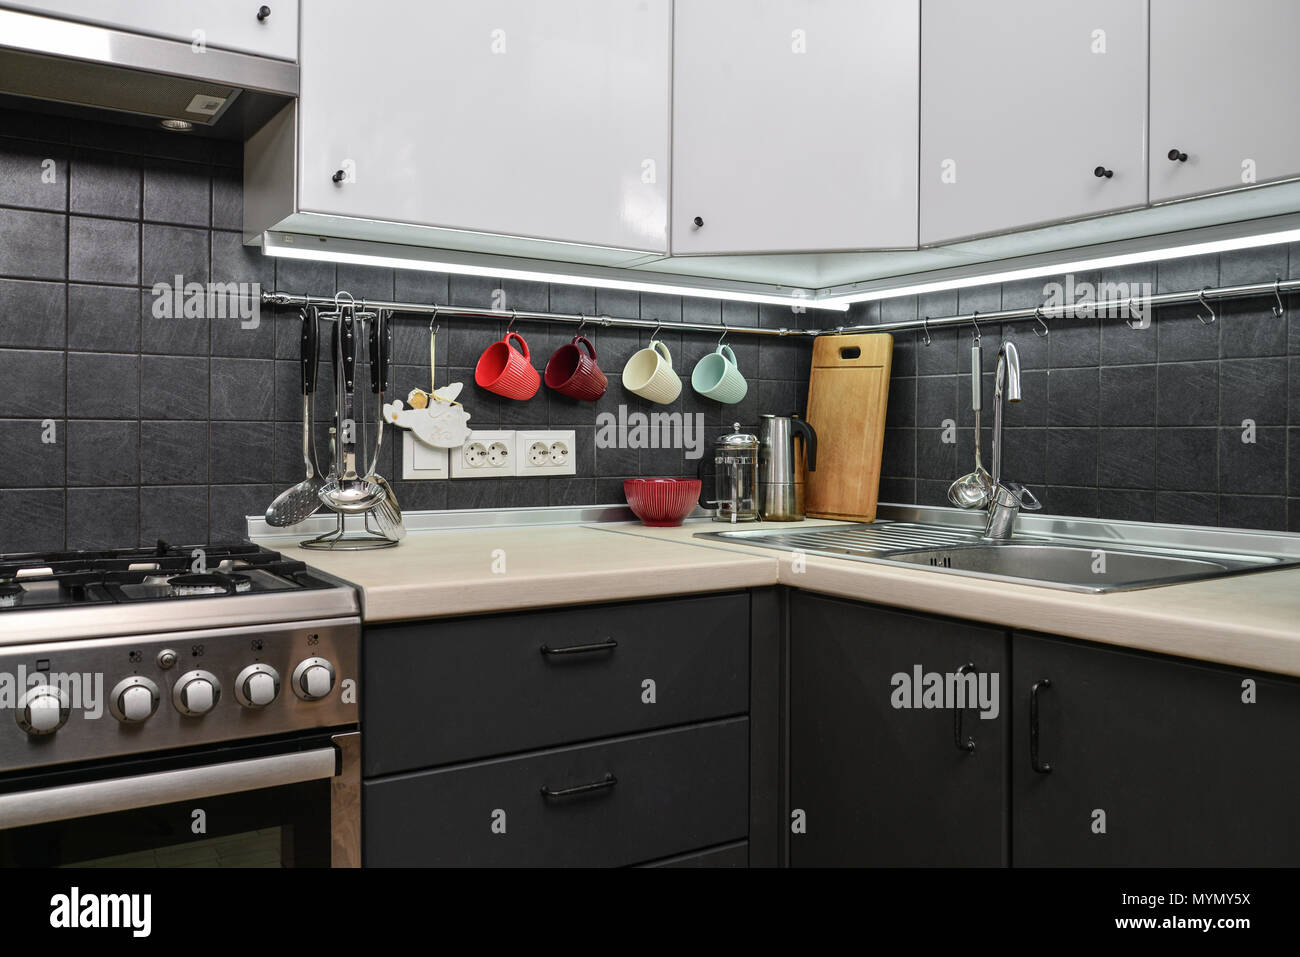 A fragment of the modern style kitchen with rail system and kitchen utensils and houseplant - Stock Image